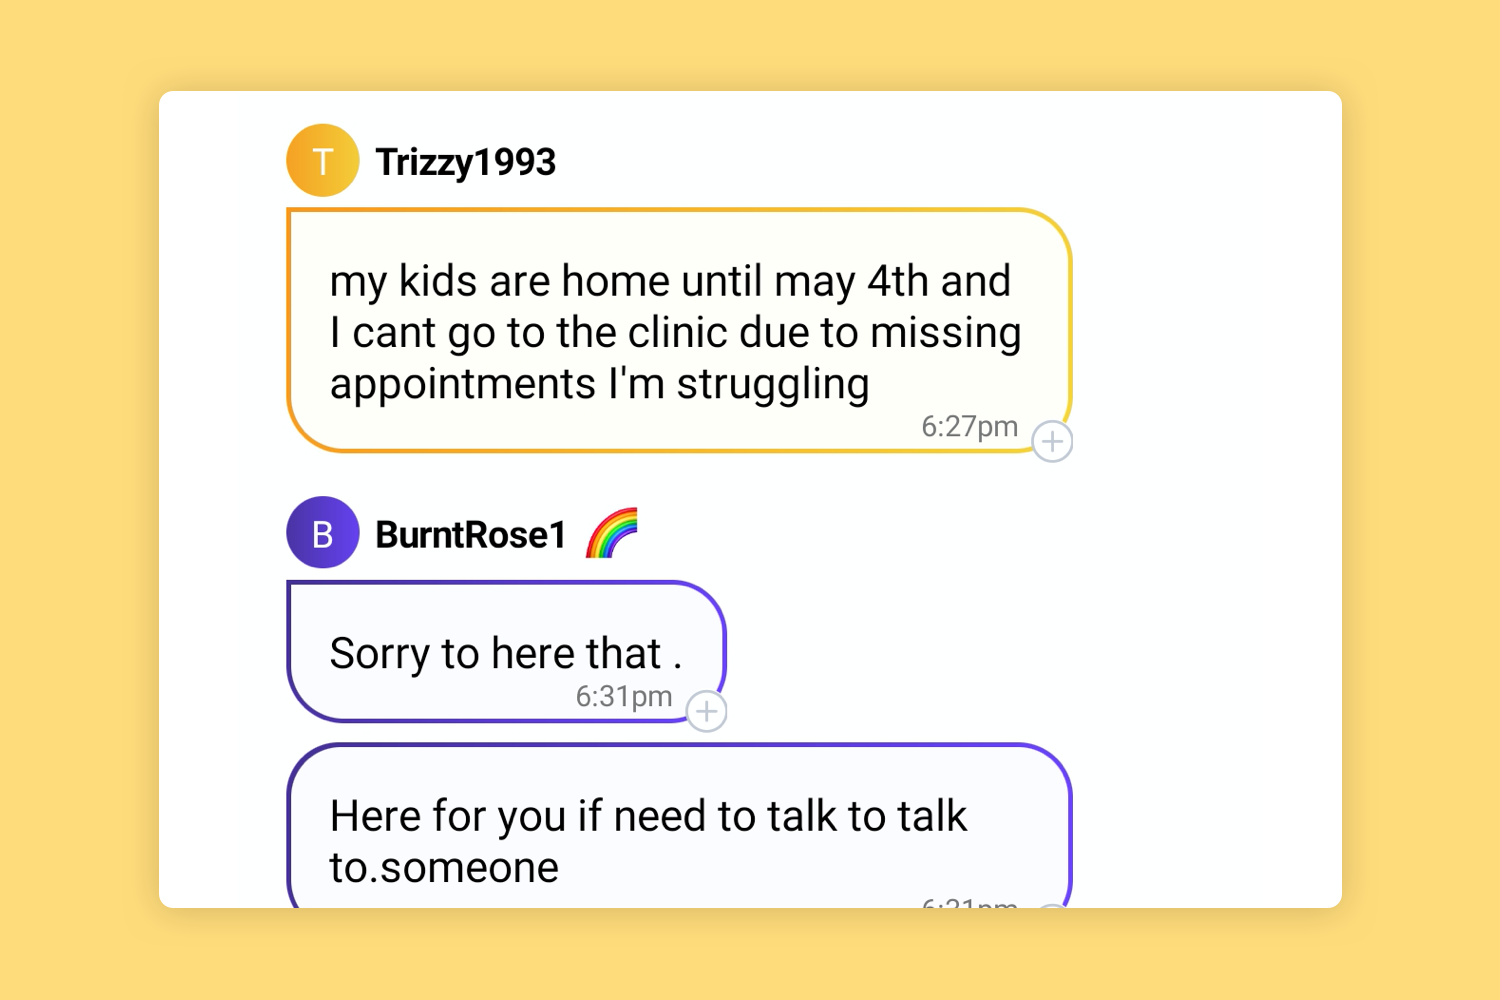 Sample chat screens showing there is always someone to talk to